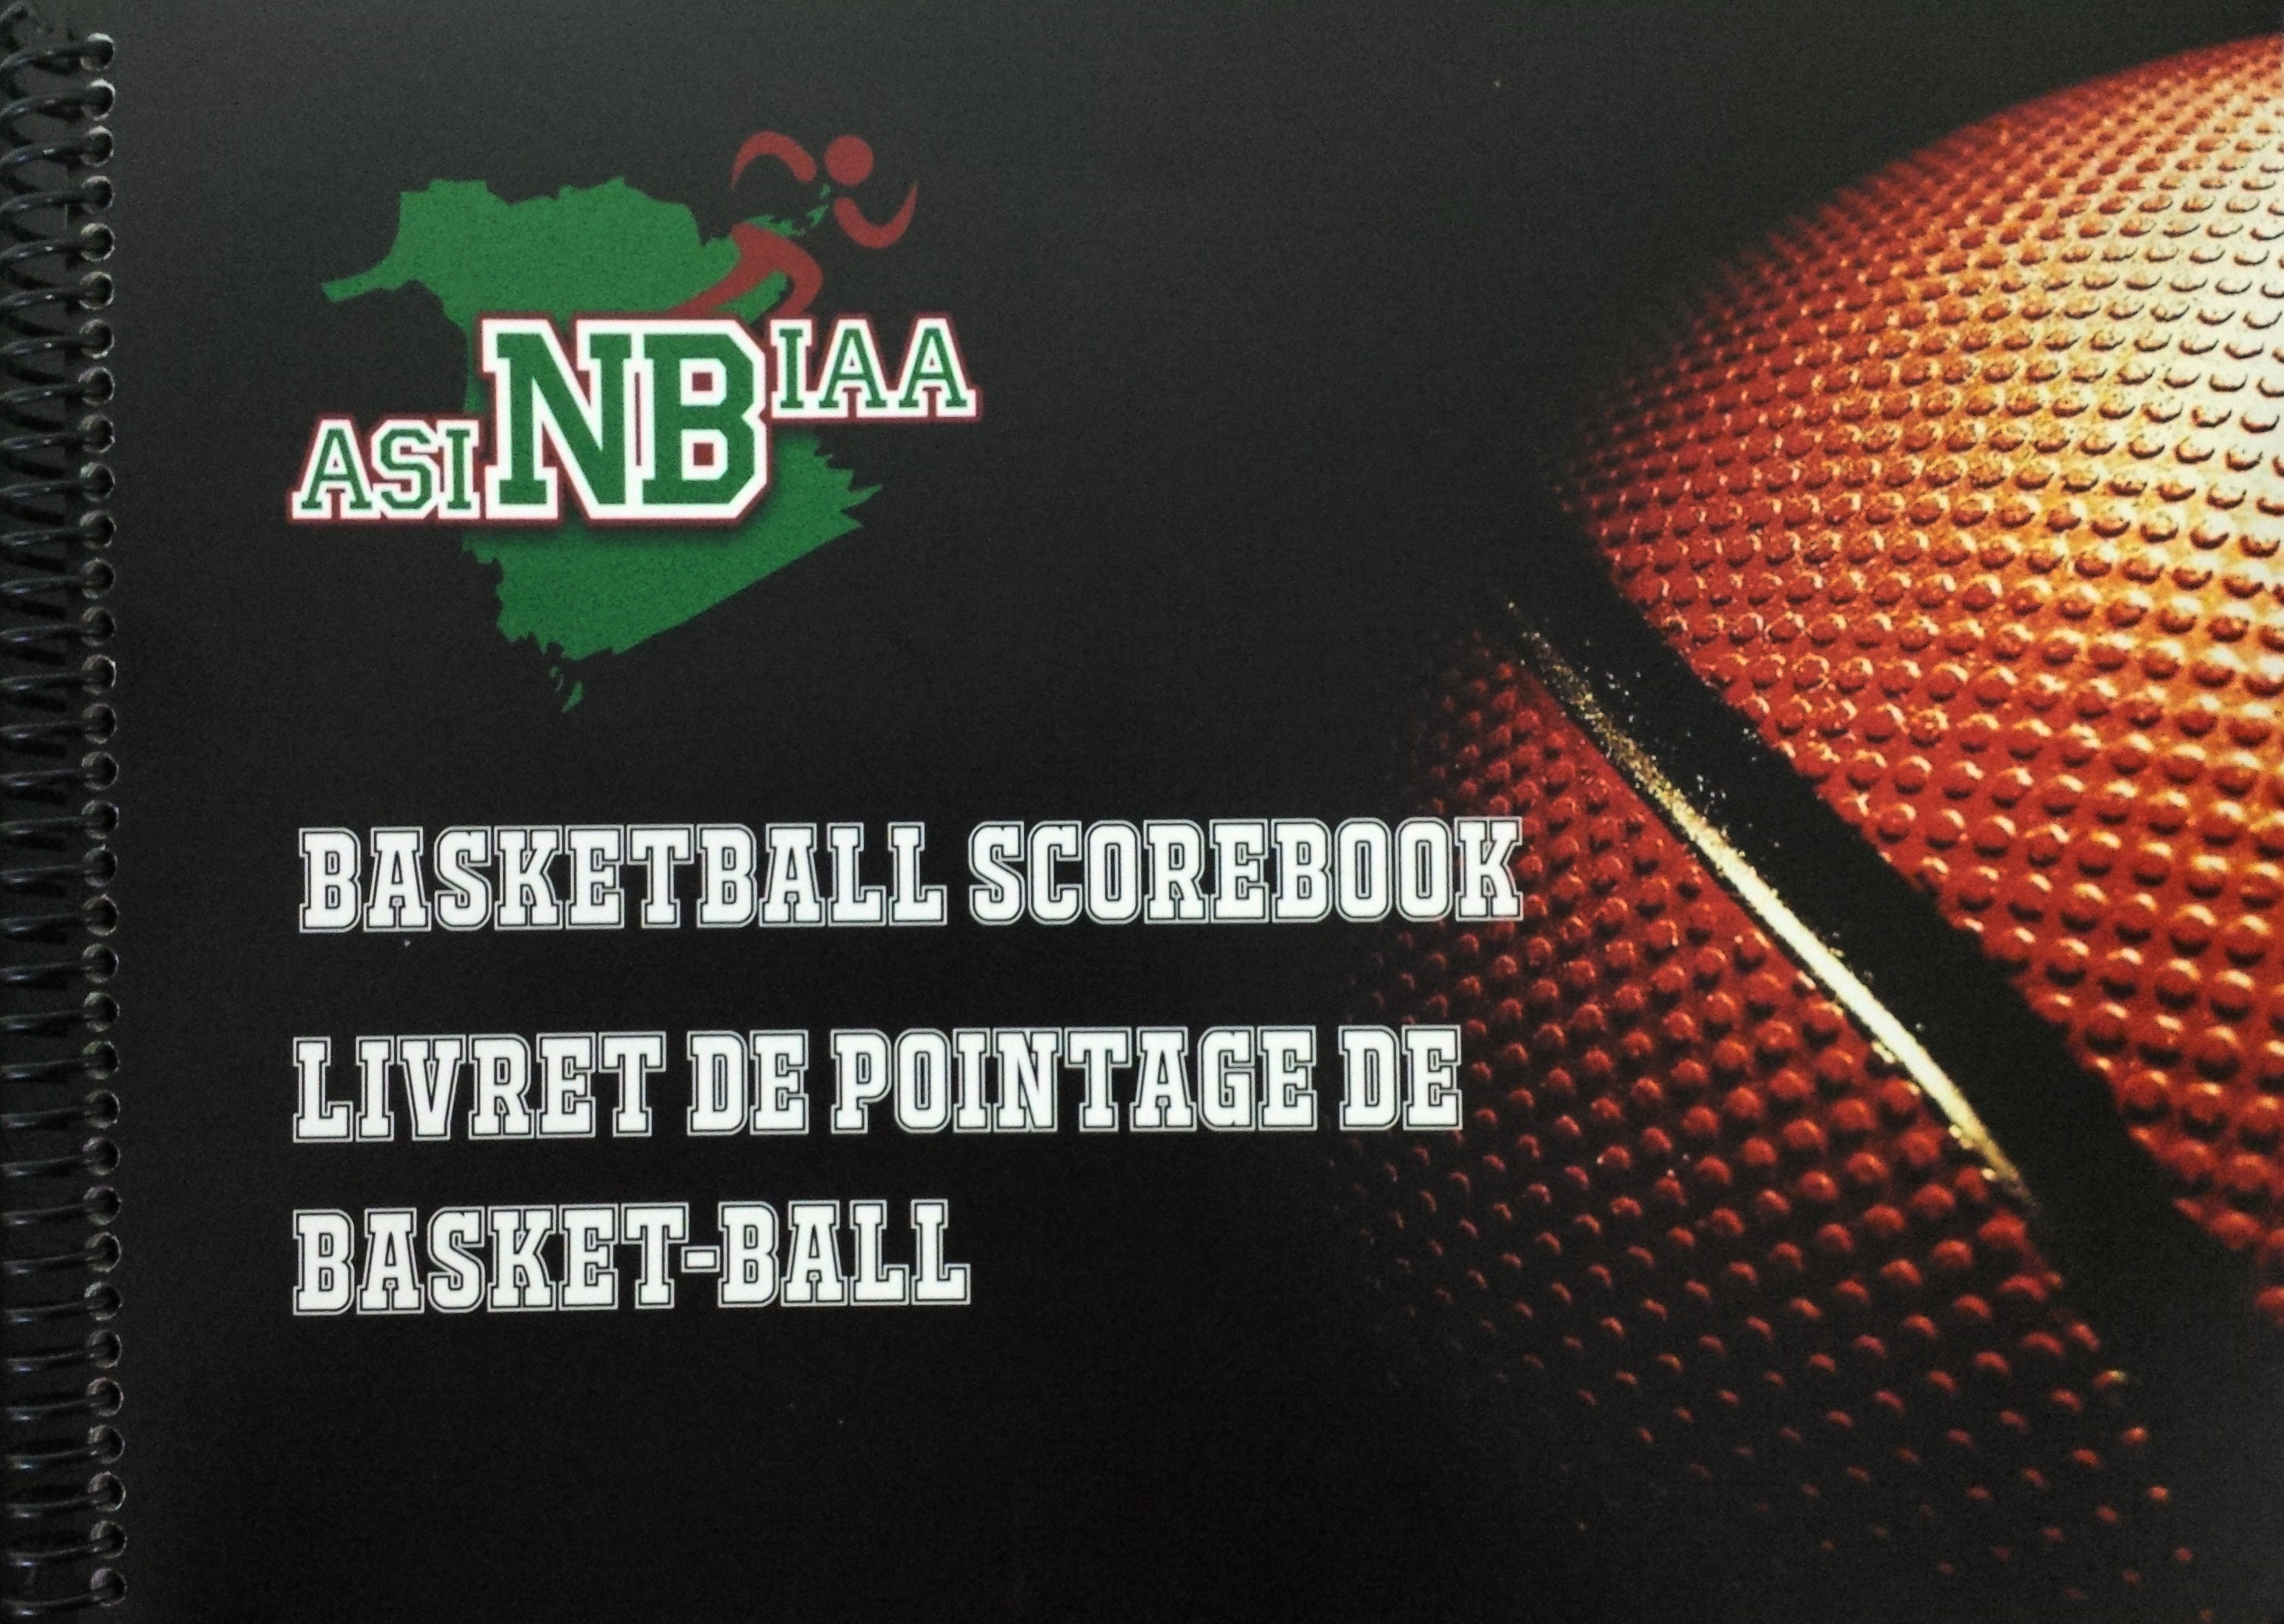 Basketball score book